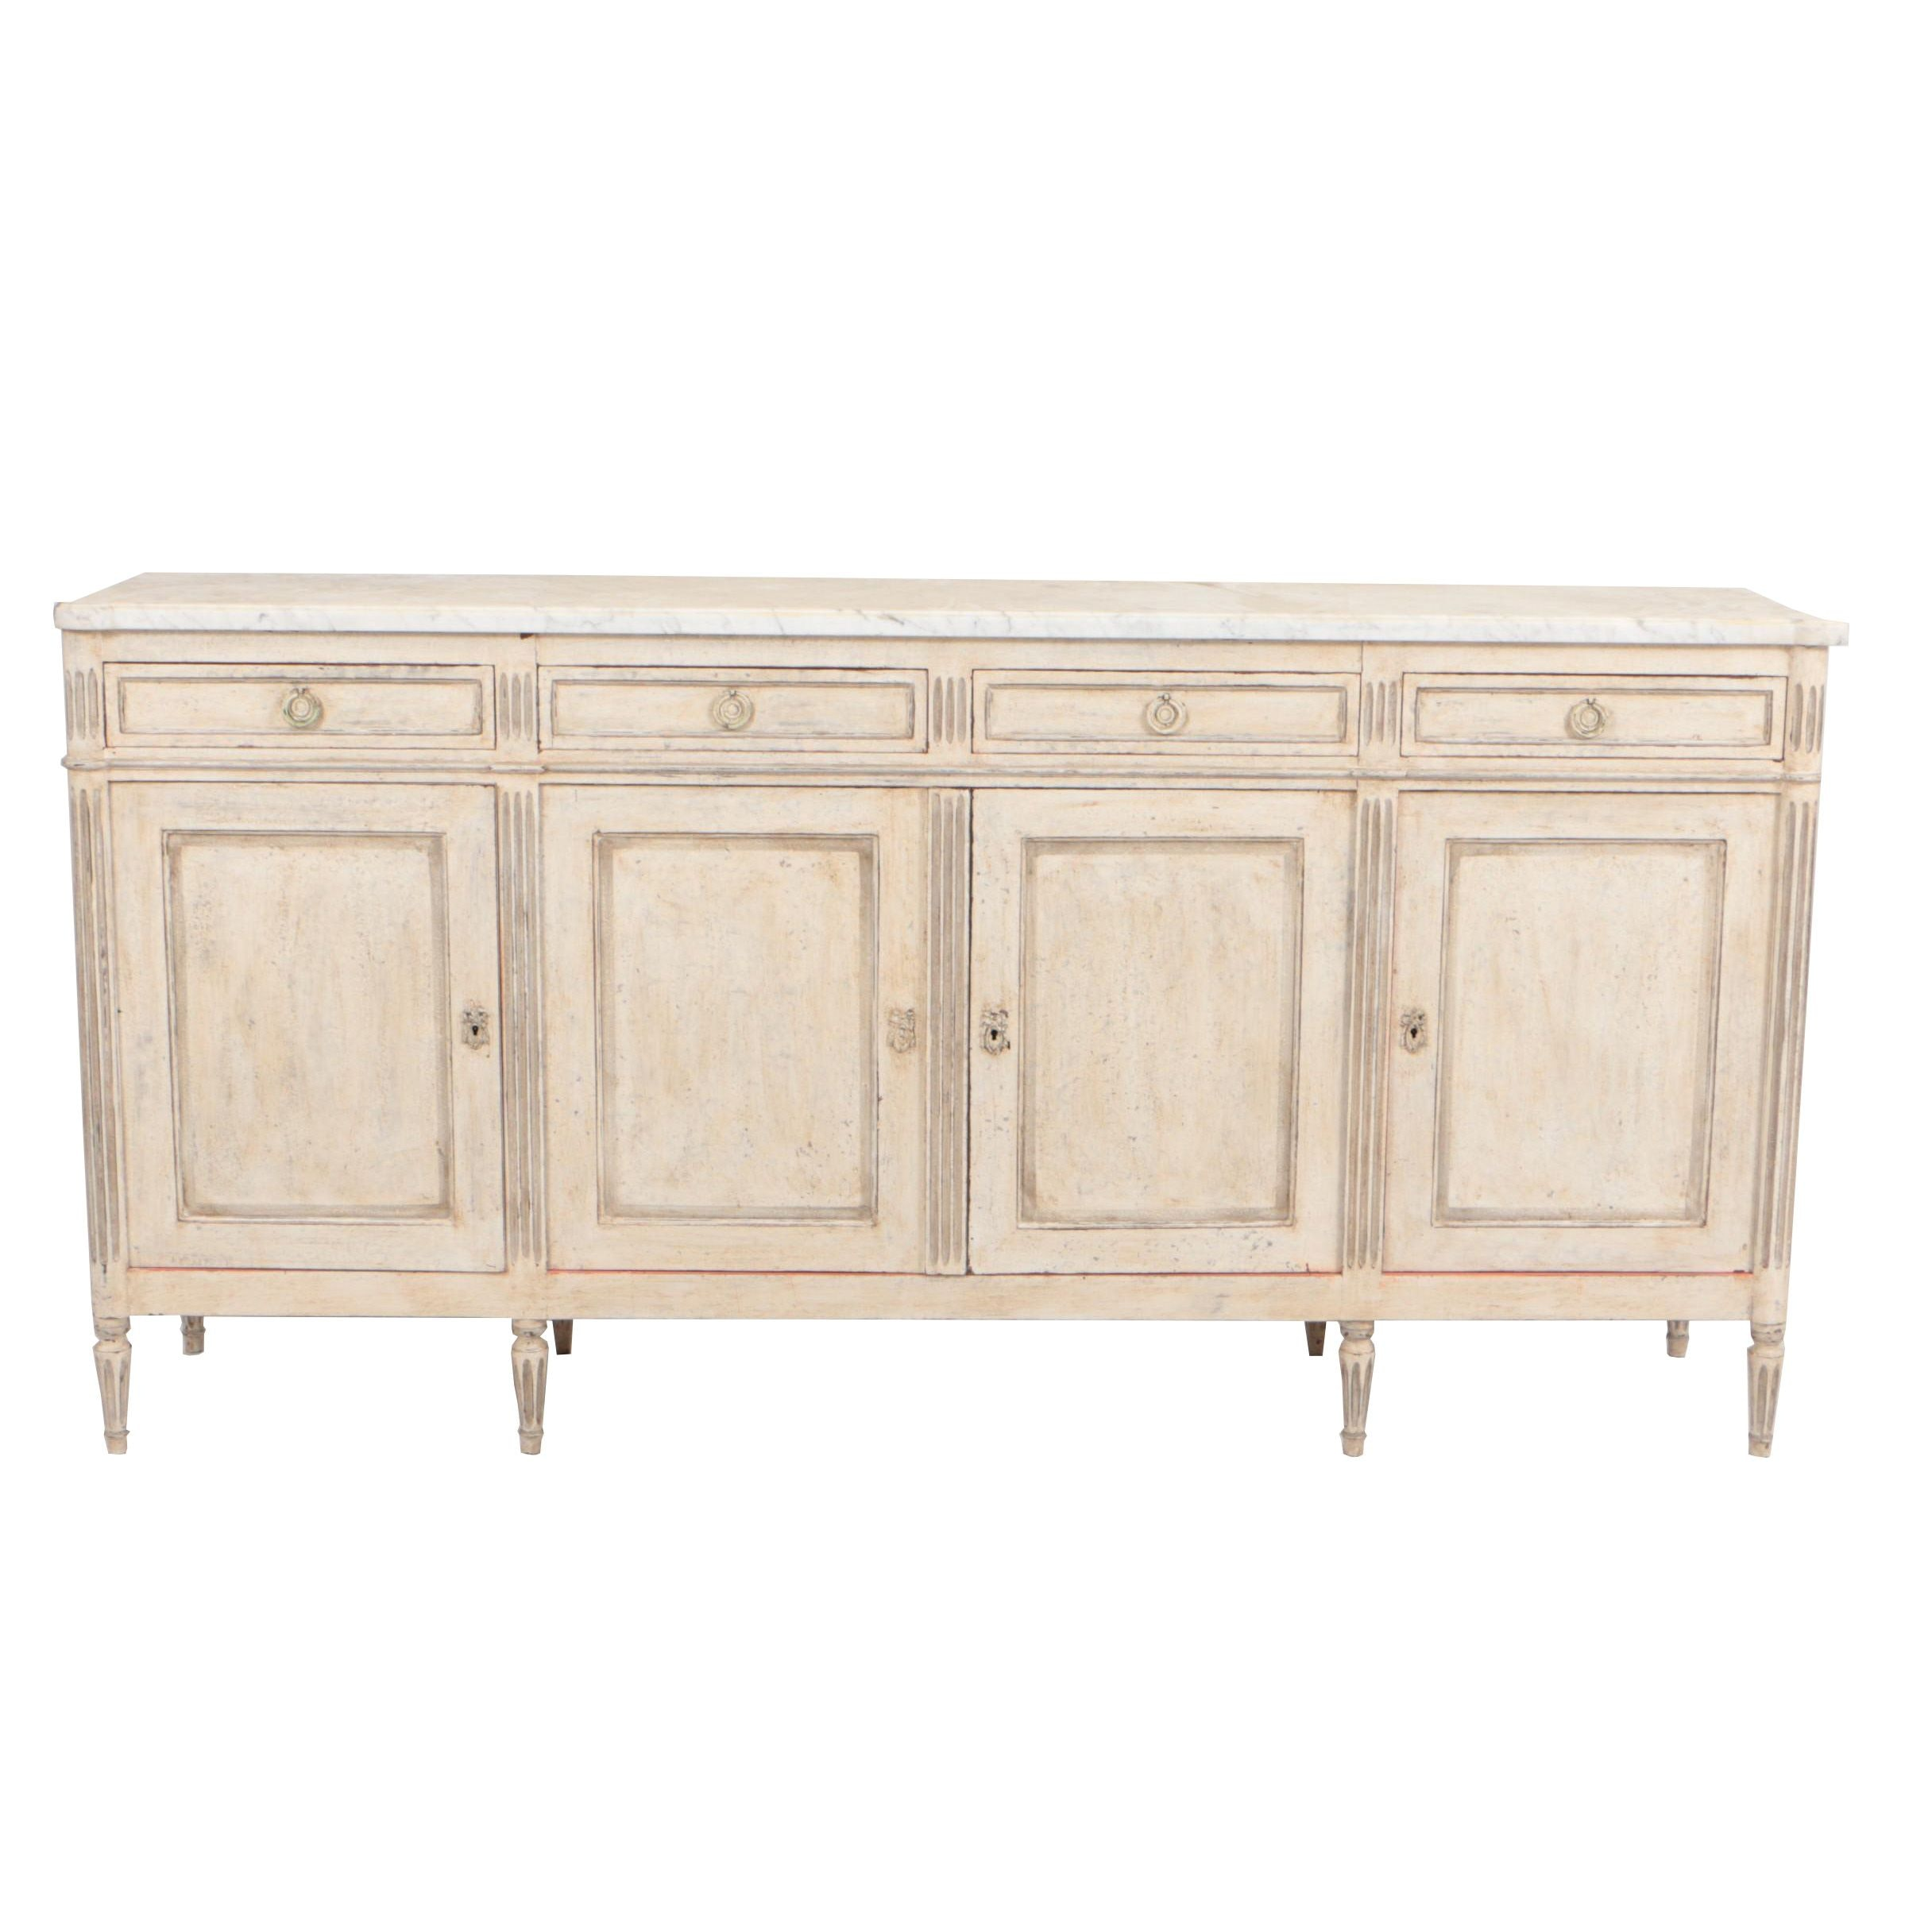 Circa 1930 Louis XVI Style Painted Enfilade with Marble Top